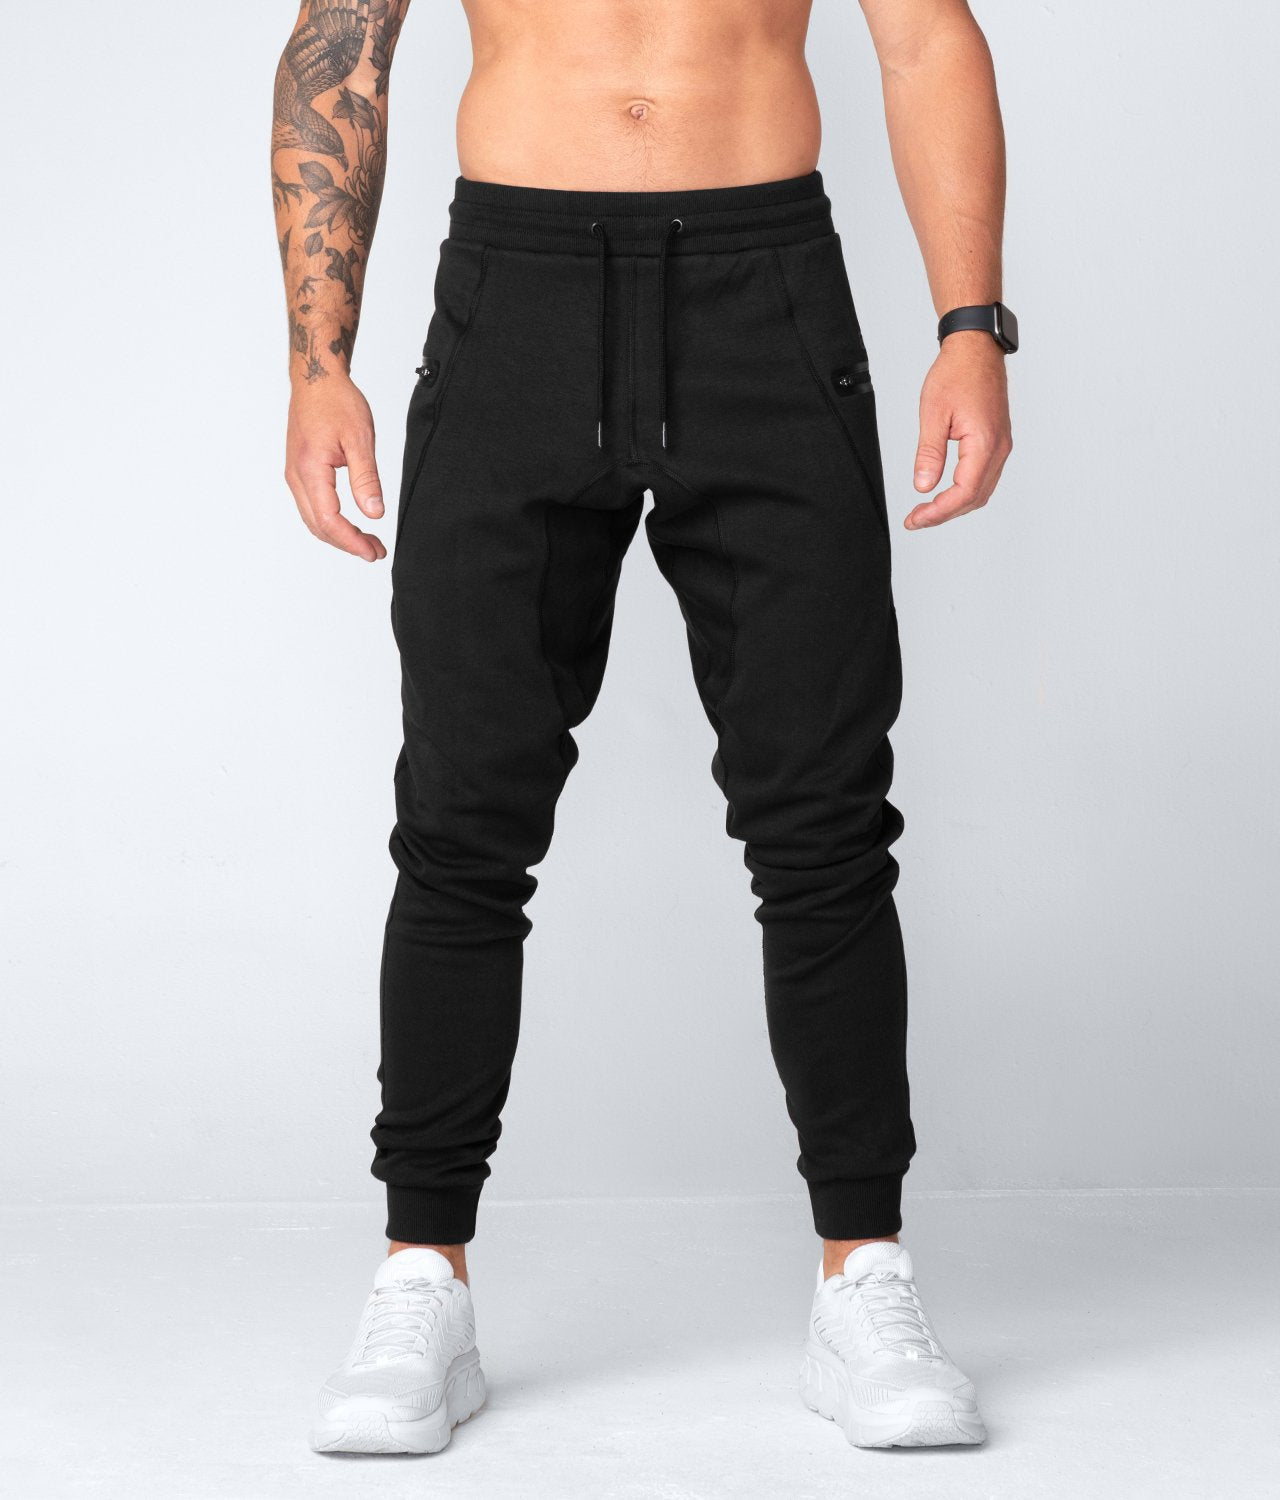 Born Tough United Kingdom Core Fit Zippered High-Quality Black Gym Workout Jogger Pants for Men